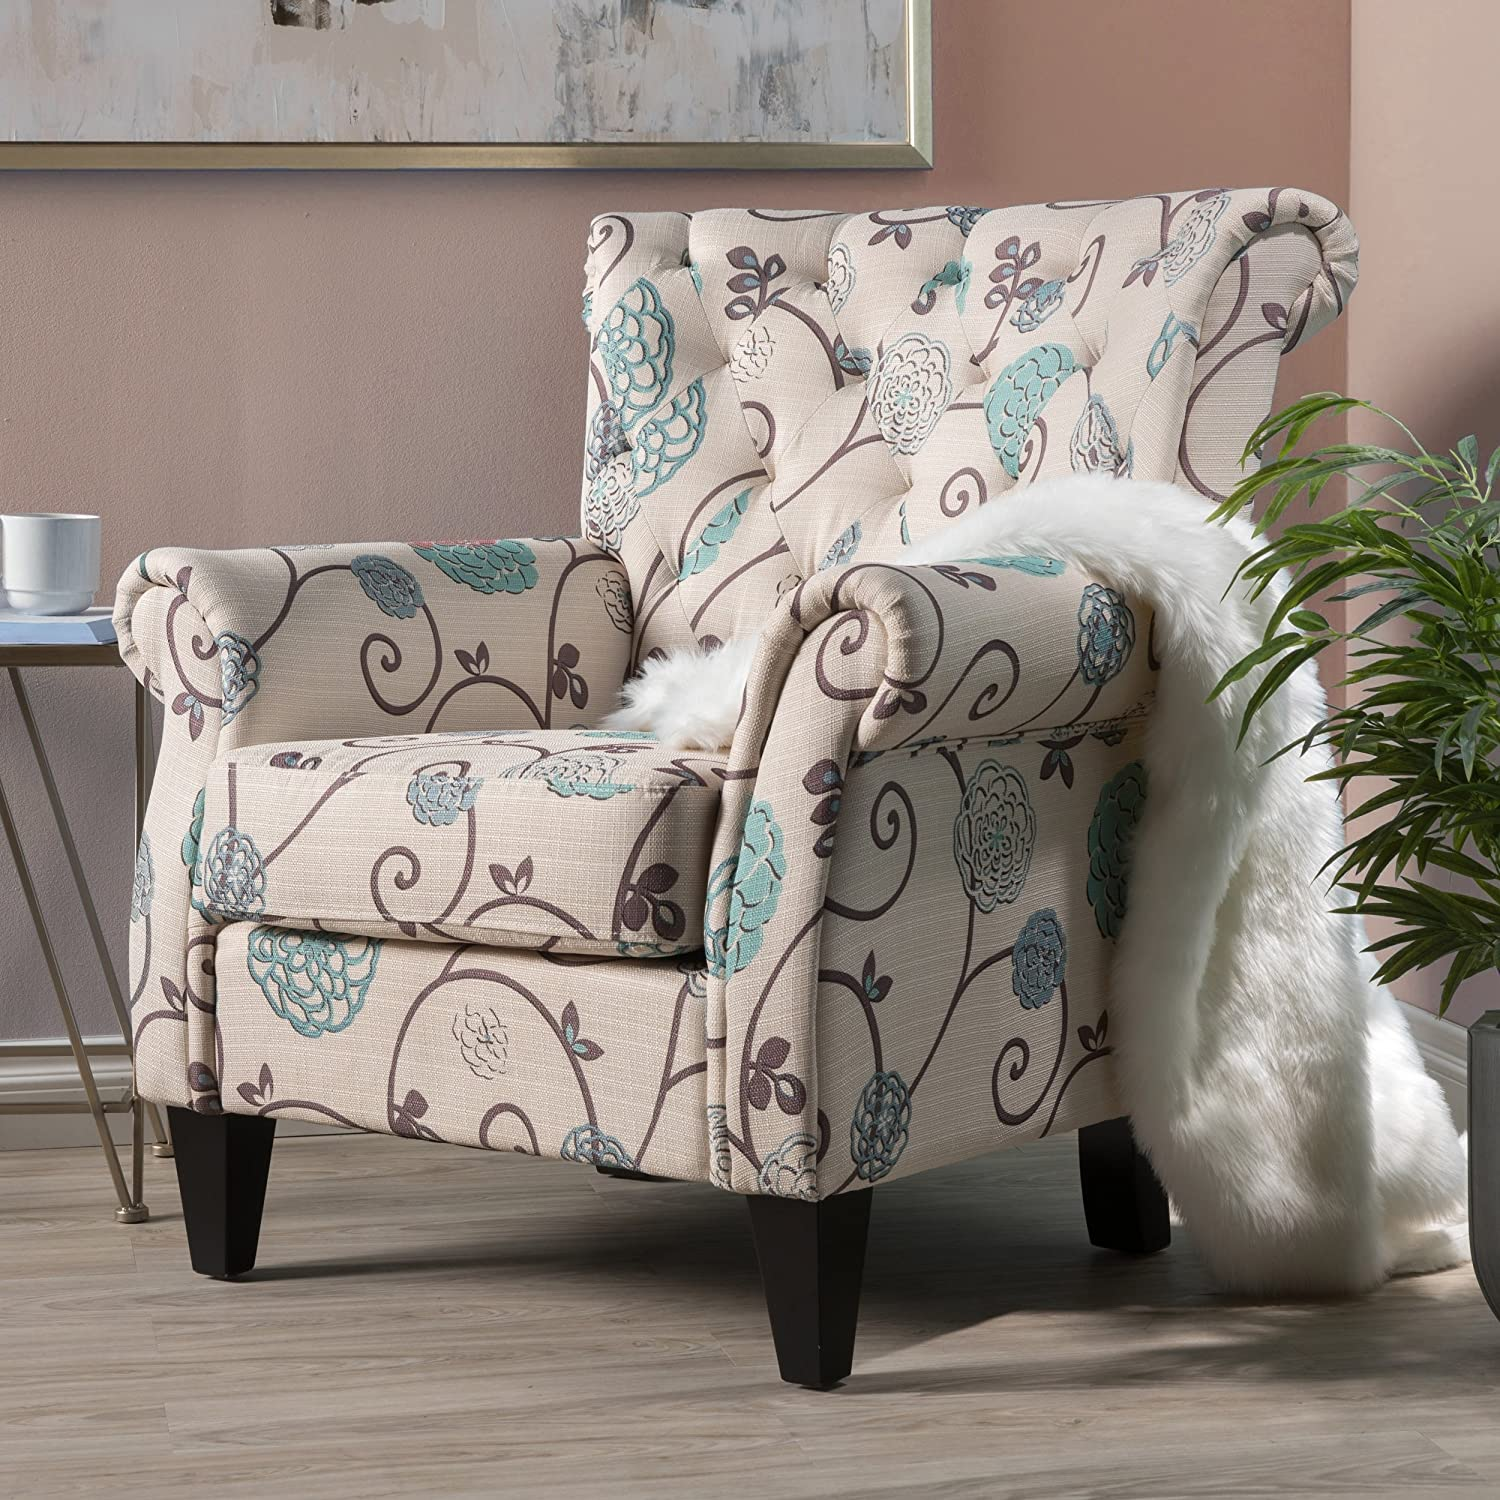 Accent Chairs For Living Room Amazon.com: Accent Chairs with Arms for Living Room Bedroom Tufted Club  Chair Deco Teal Floral Upholstery: Kitchen u0026 Dining